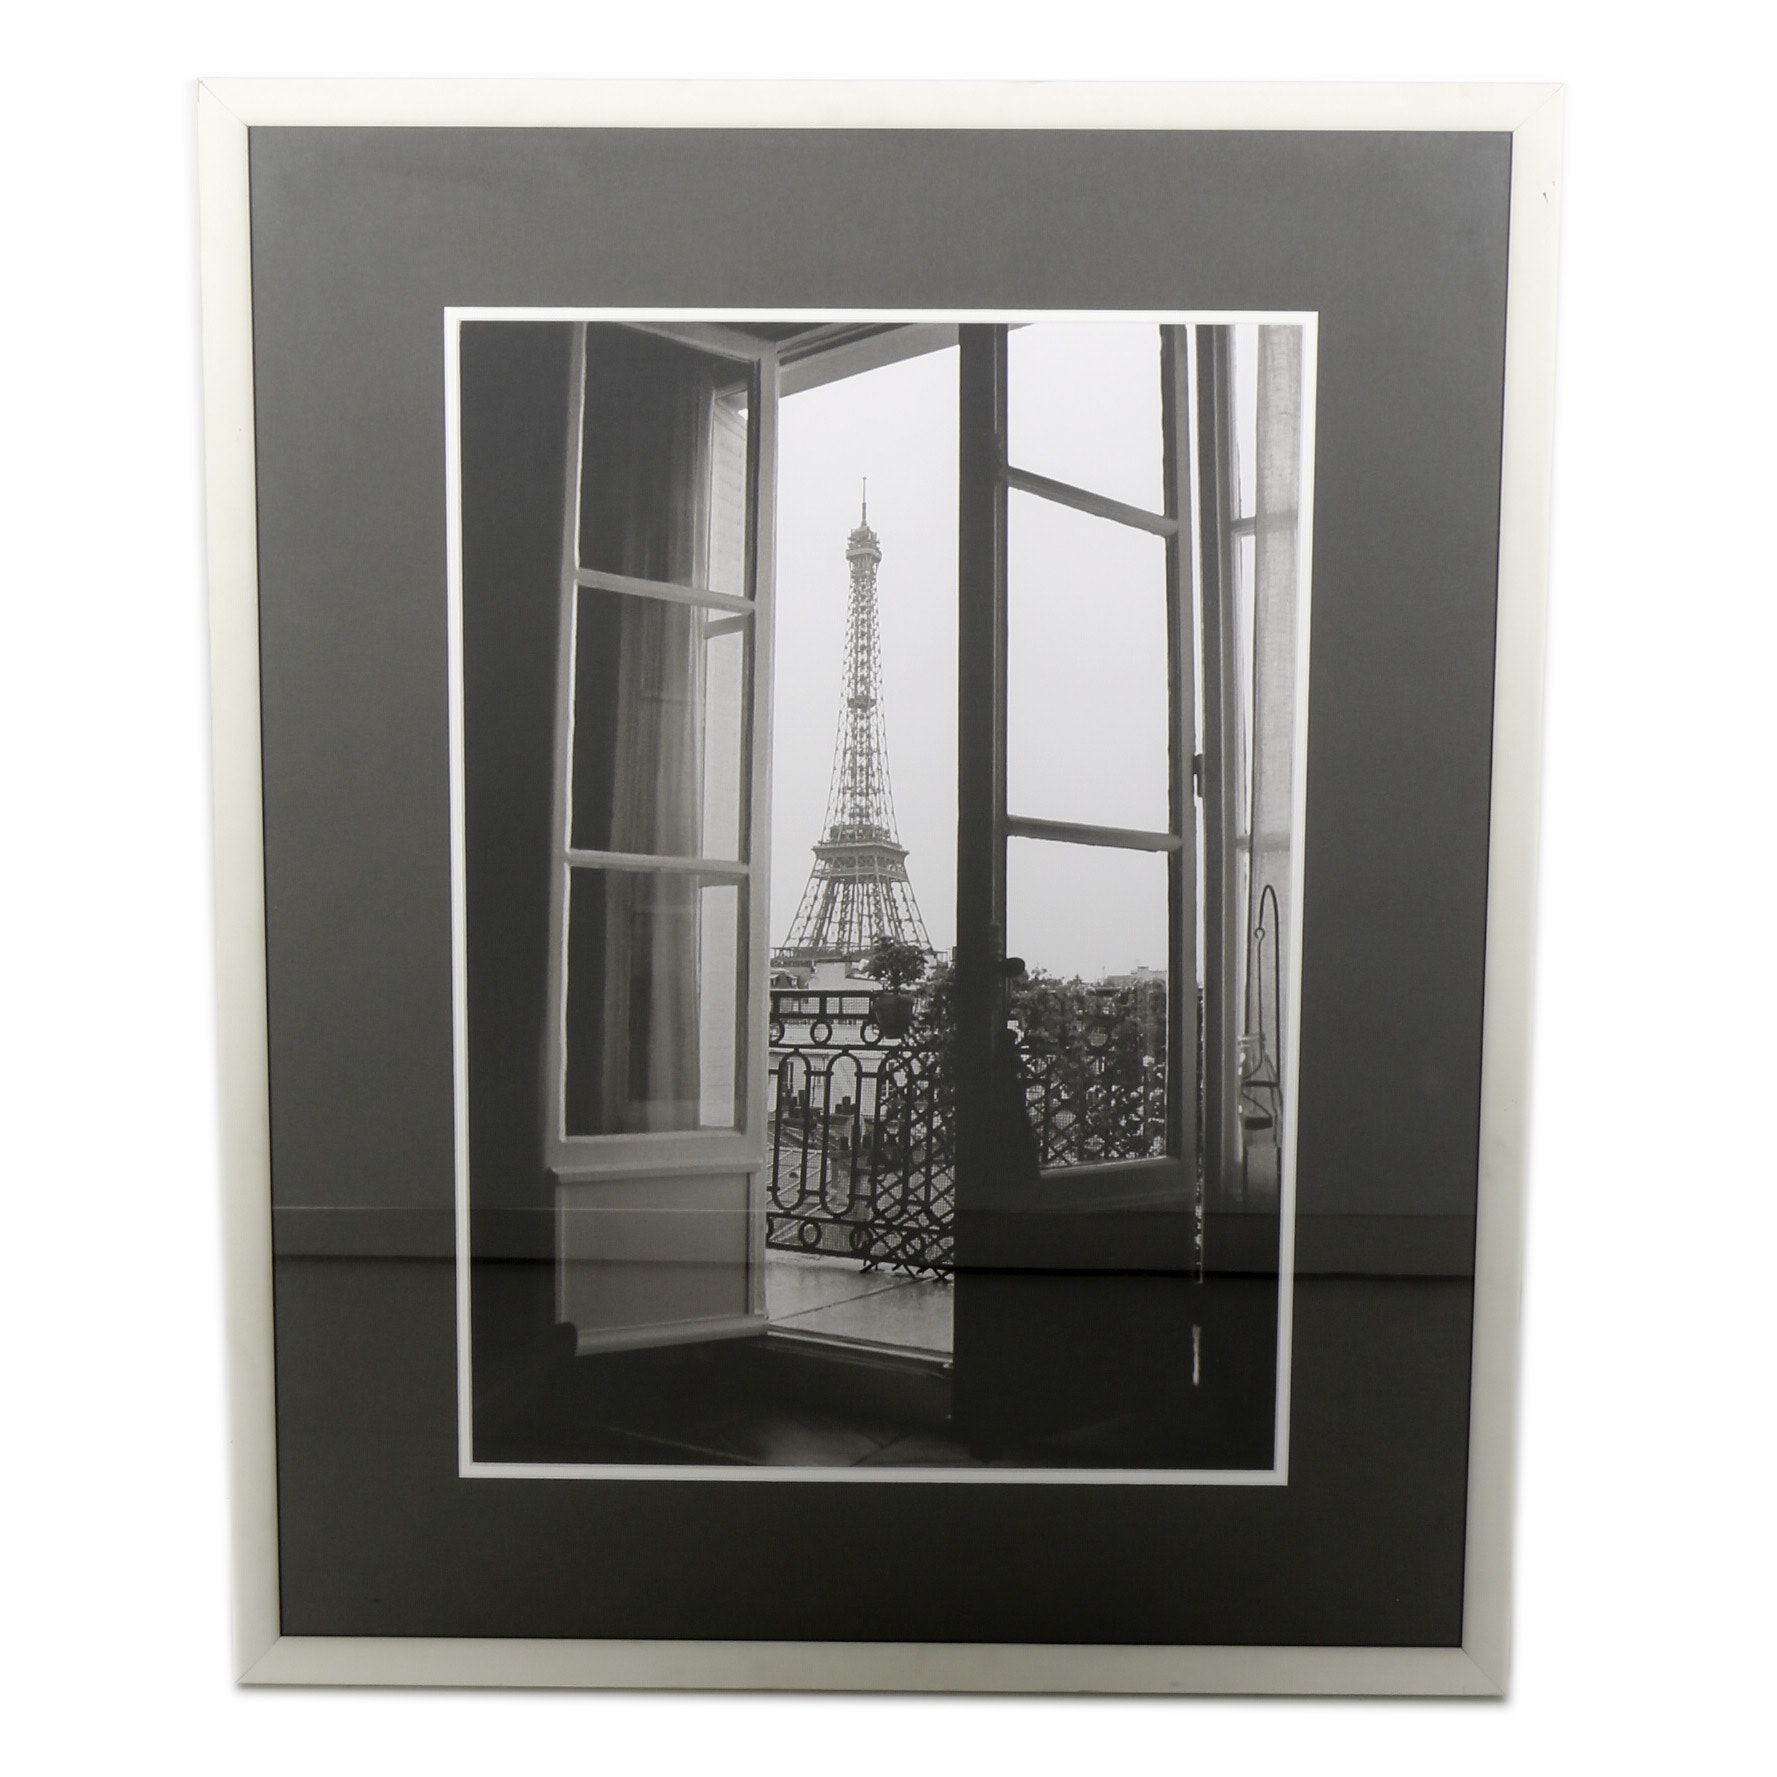 Framed Black-and-White Photo Print of Eiffel Tower